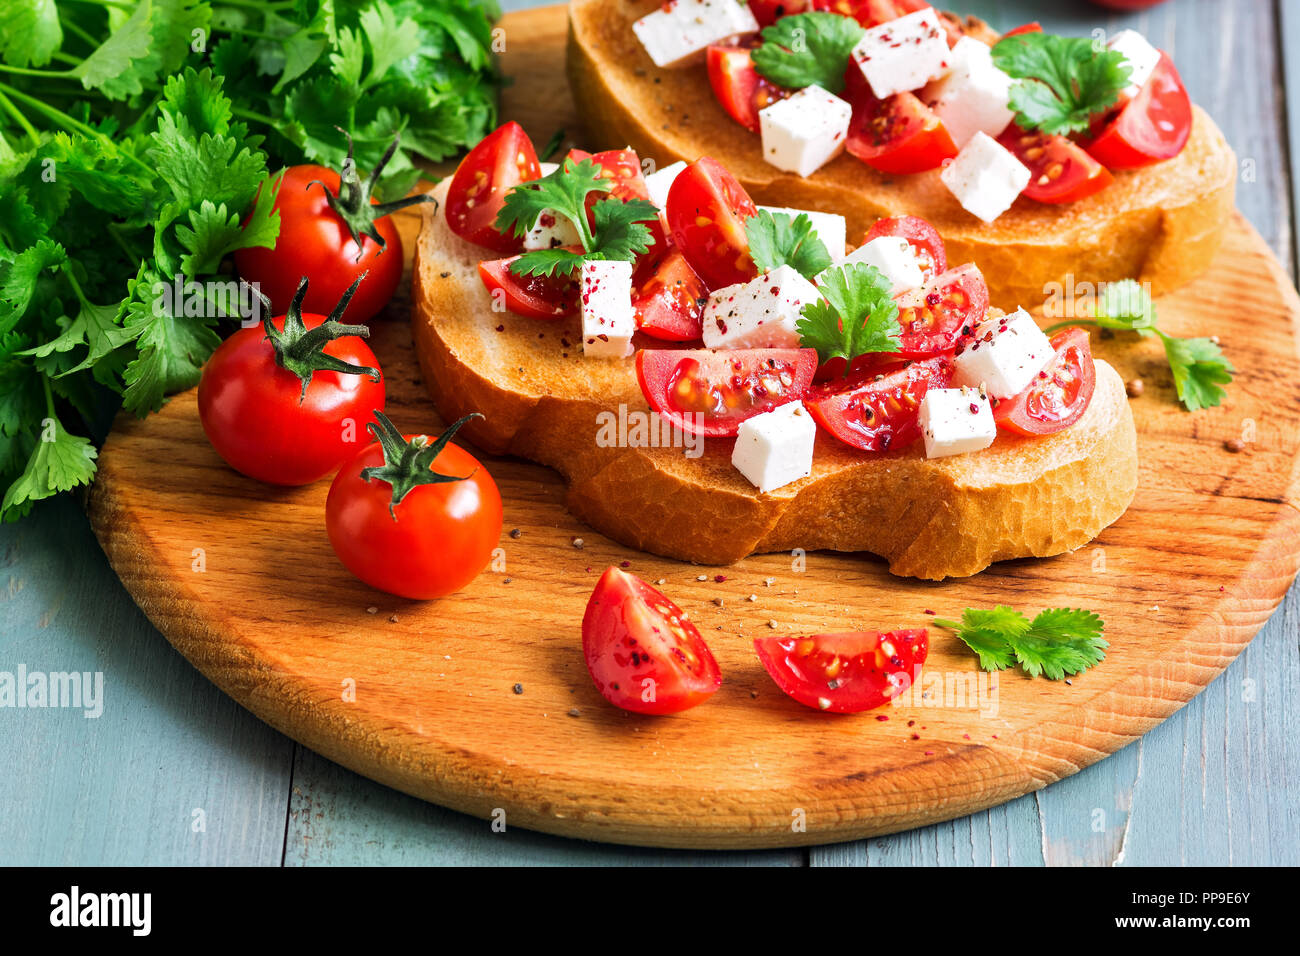 Bruschetta with tomatoes, cheese and greens on toasted bread. Traditional Italian food. Selective focus - Stock Image